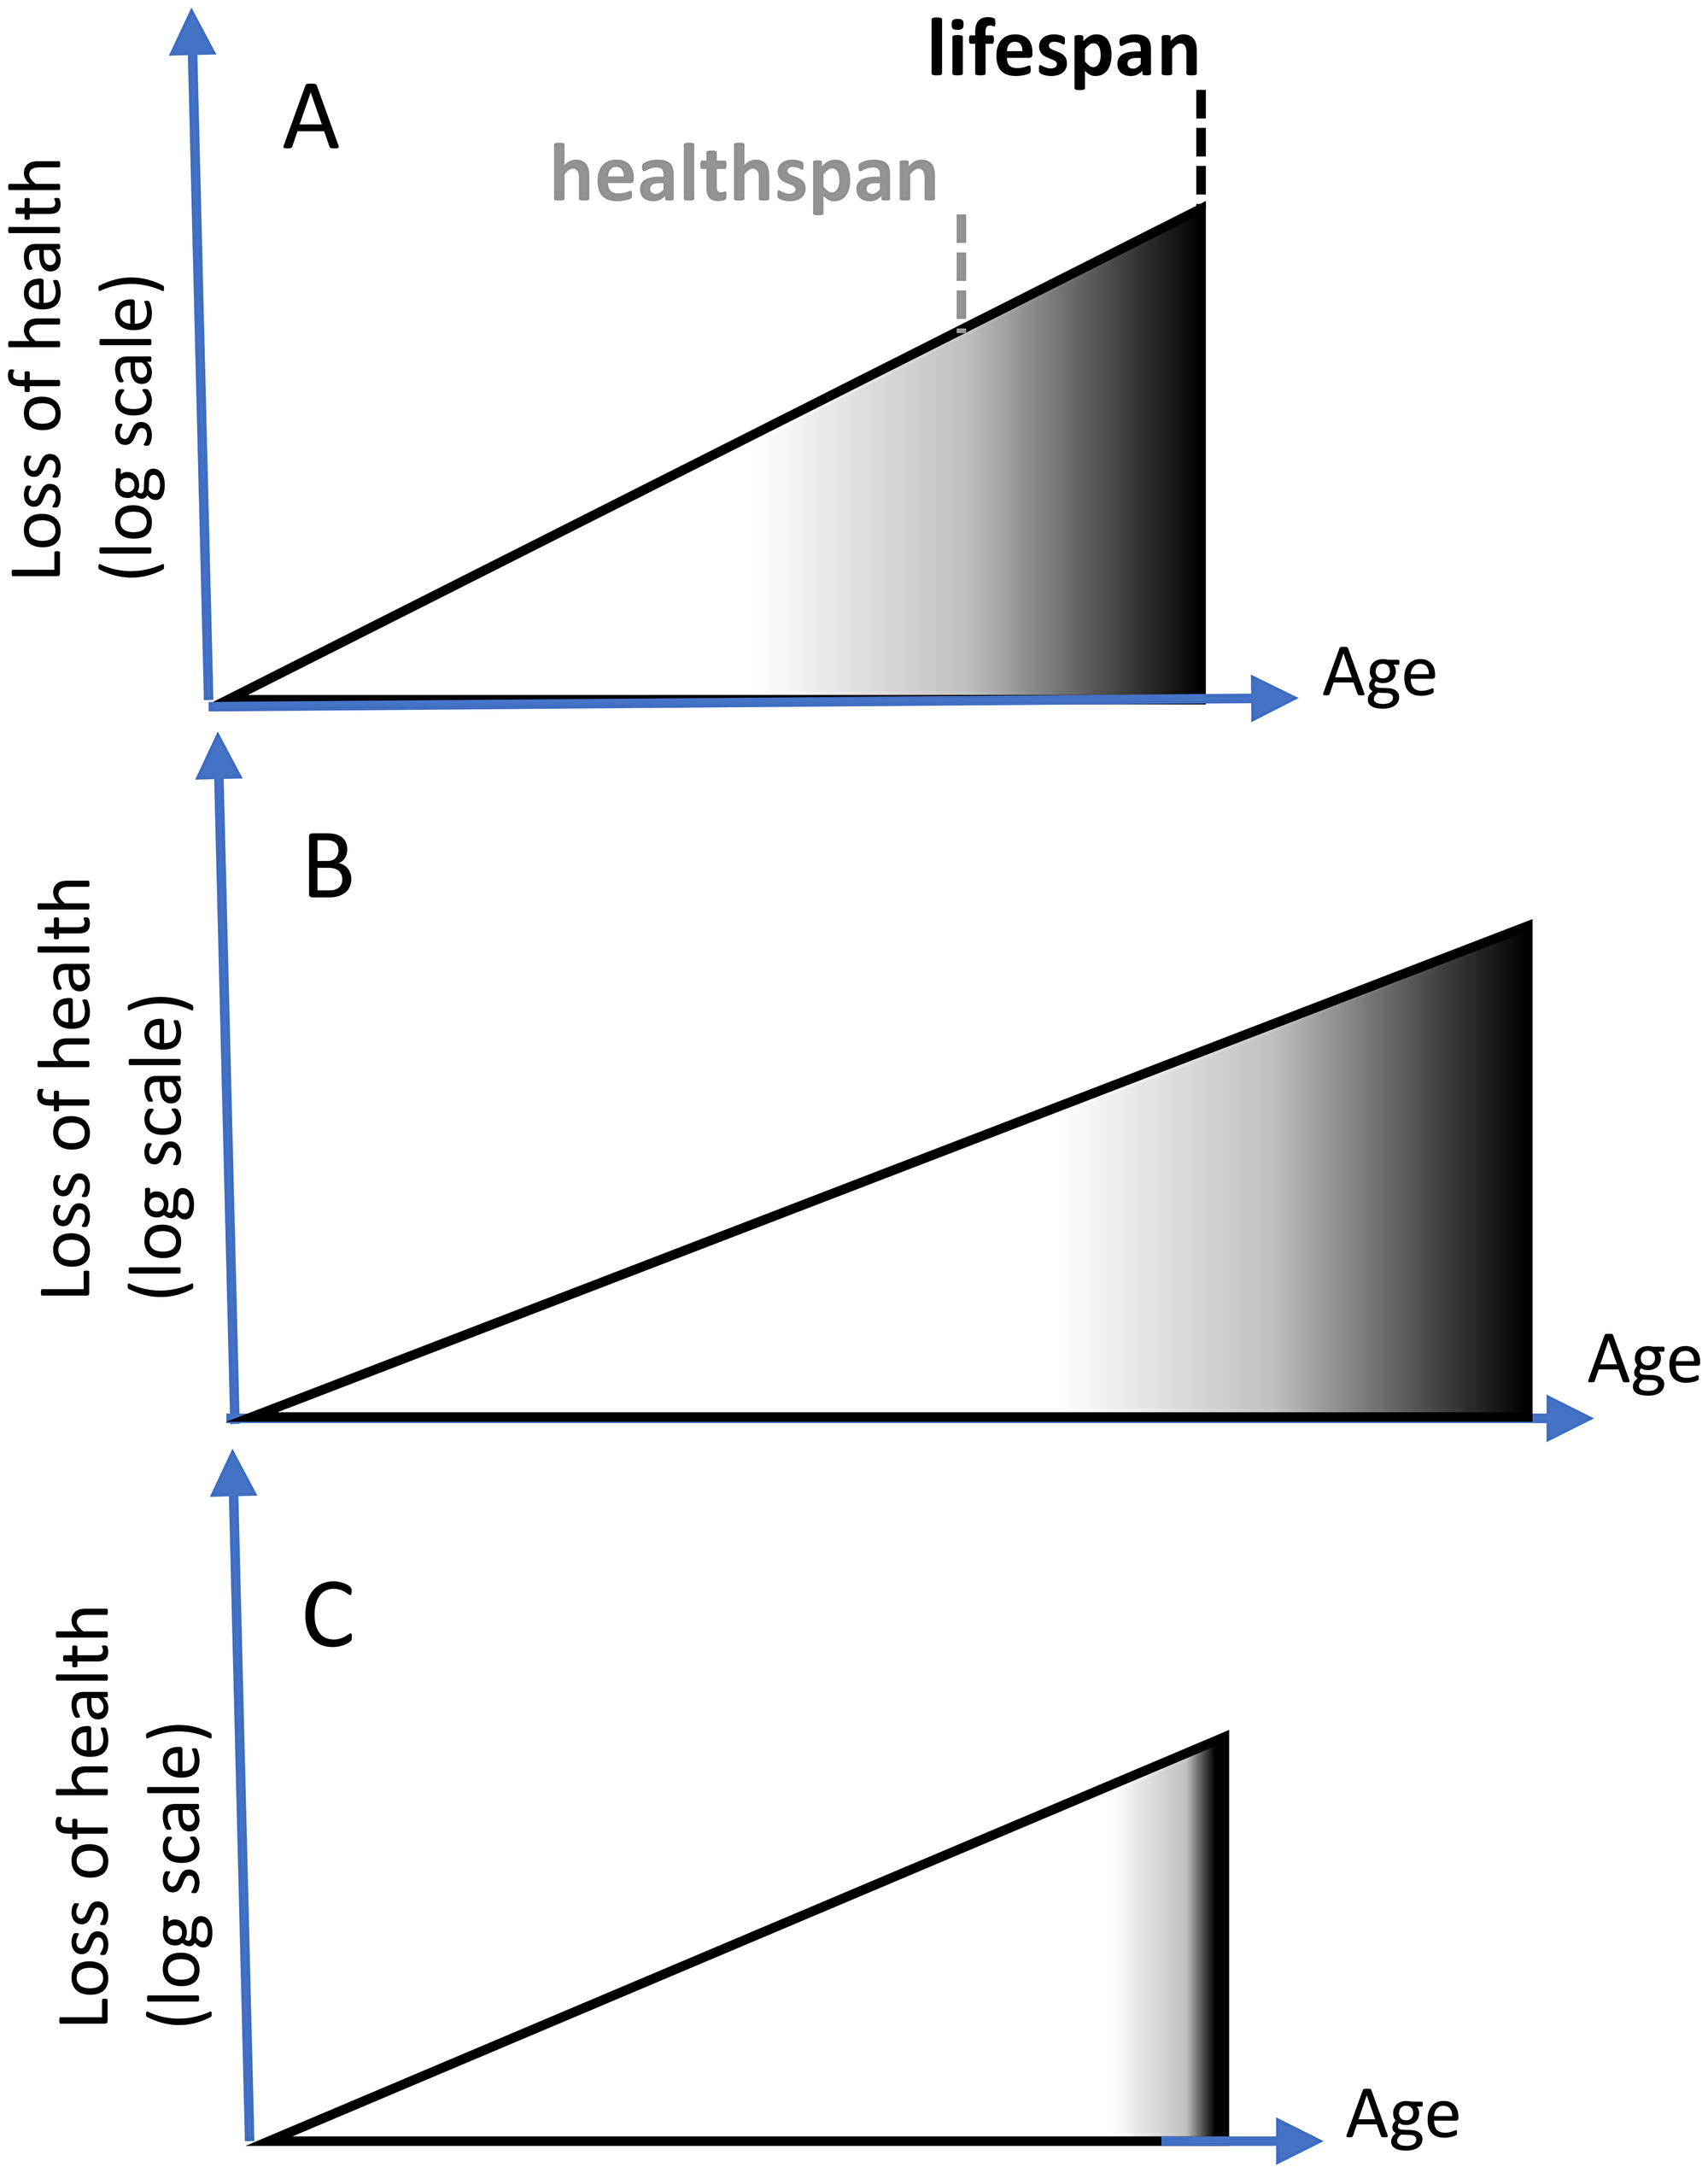 Extension of healthspan extends lifespan.